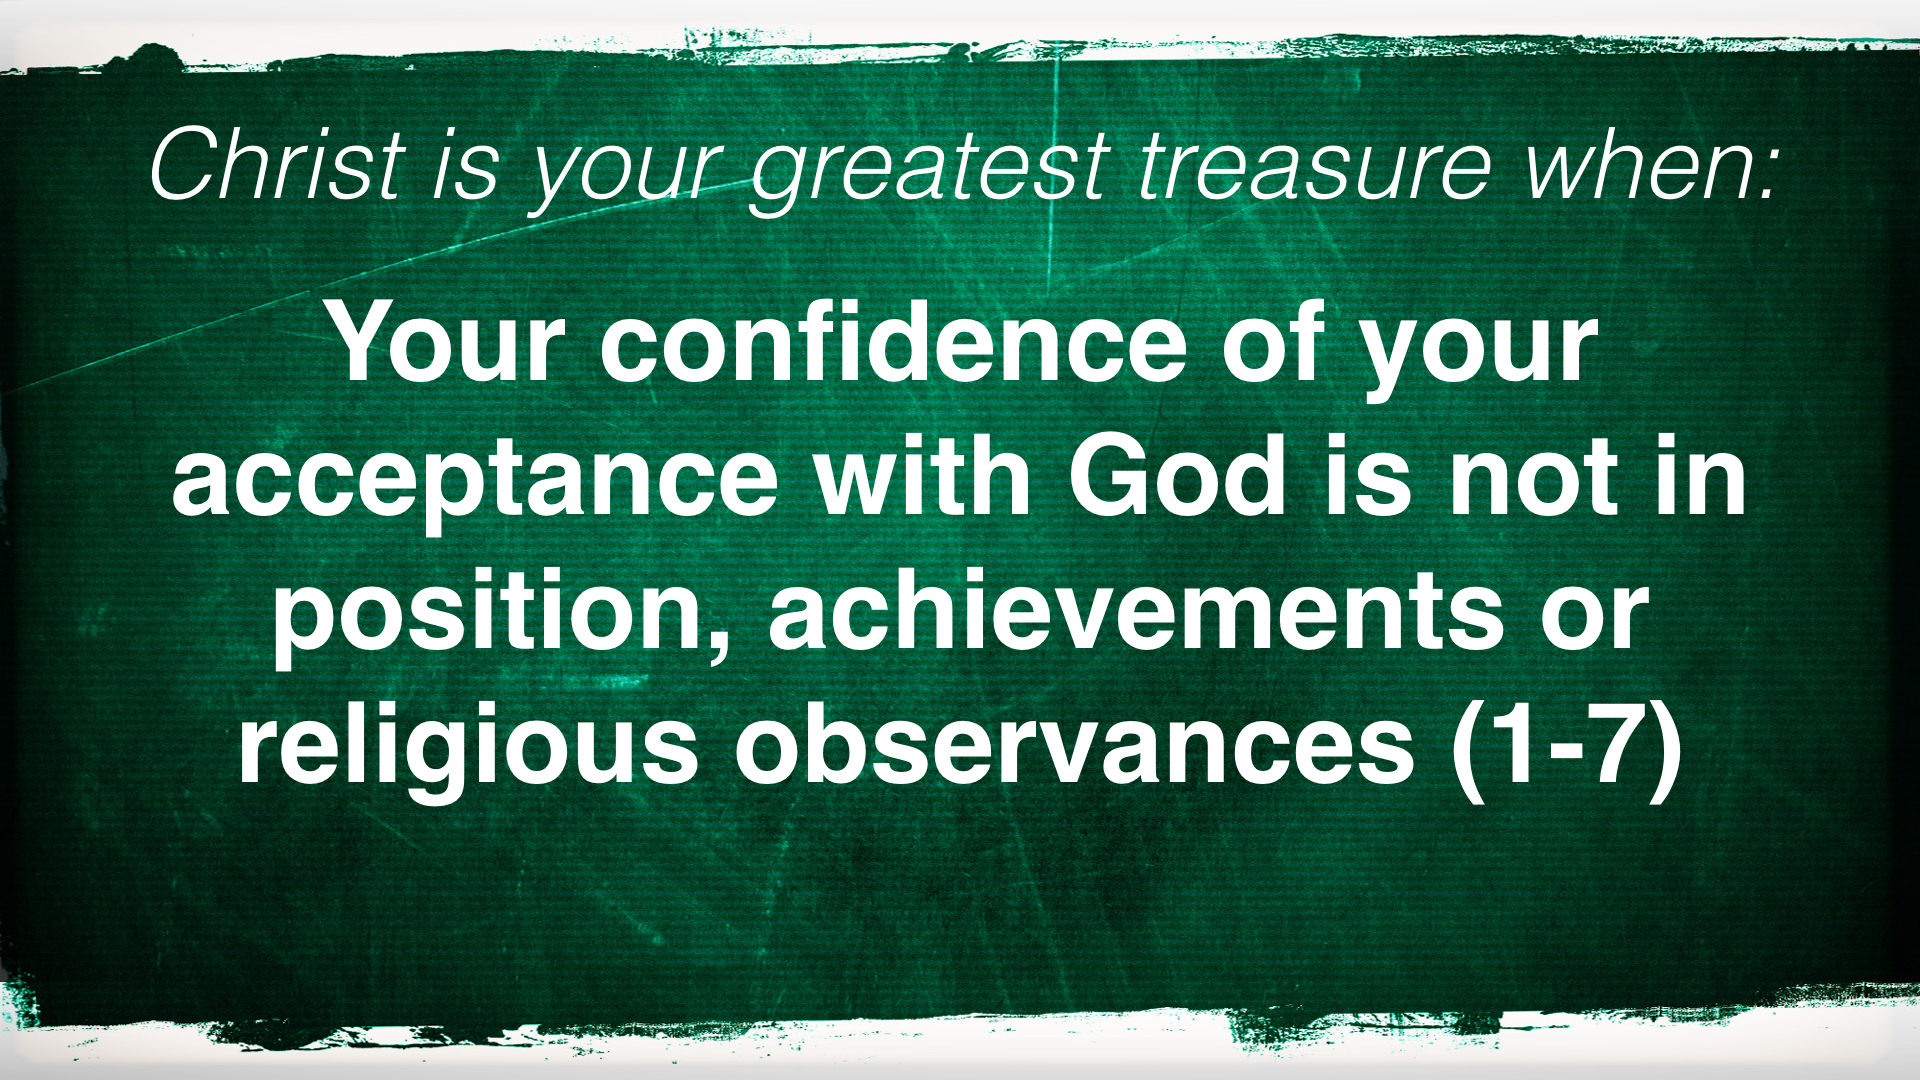 christ-your-greatest-treasure-002